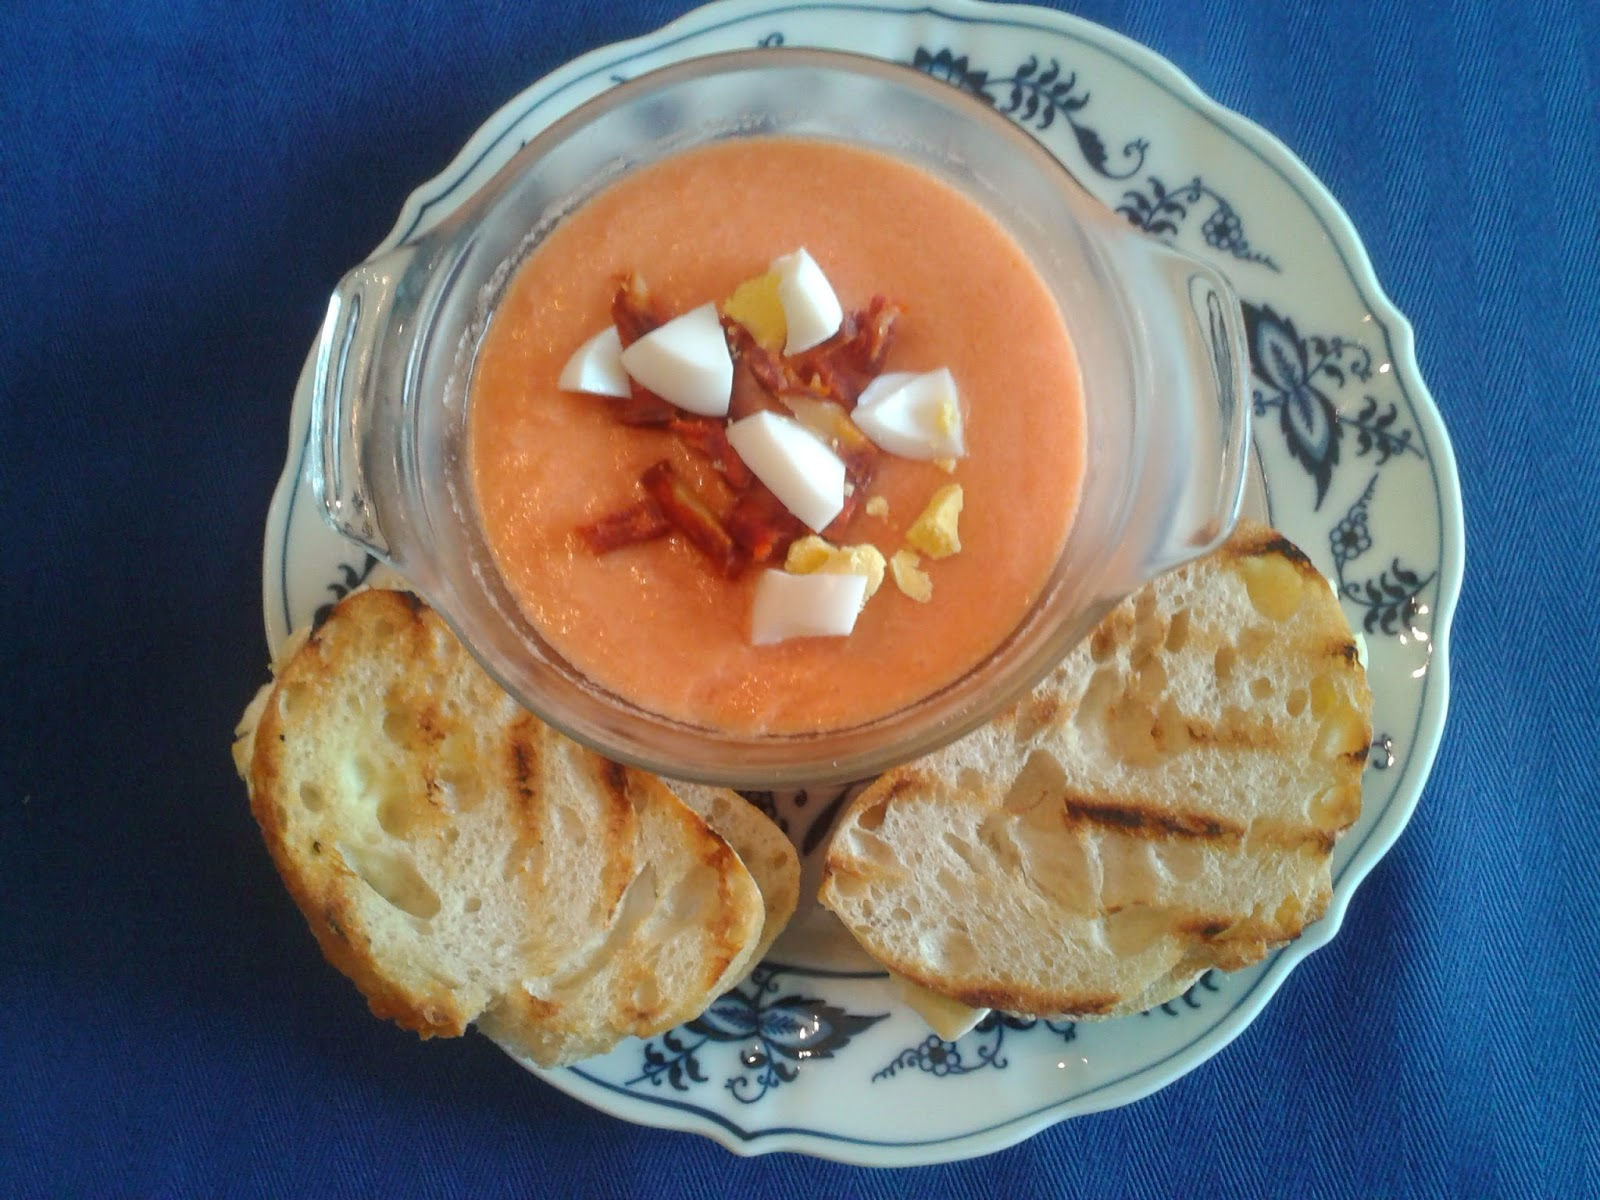 Marvelous Summer Is Coming!: Awesome Recipe For Cold Tomato Soup U0026 Grilled Brie  Sandwiches